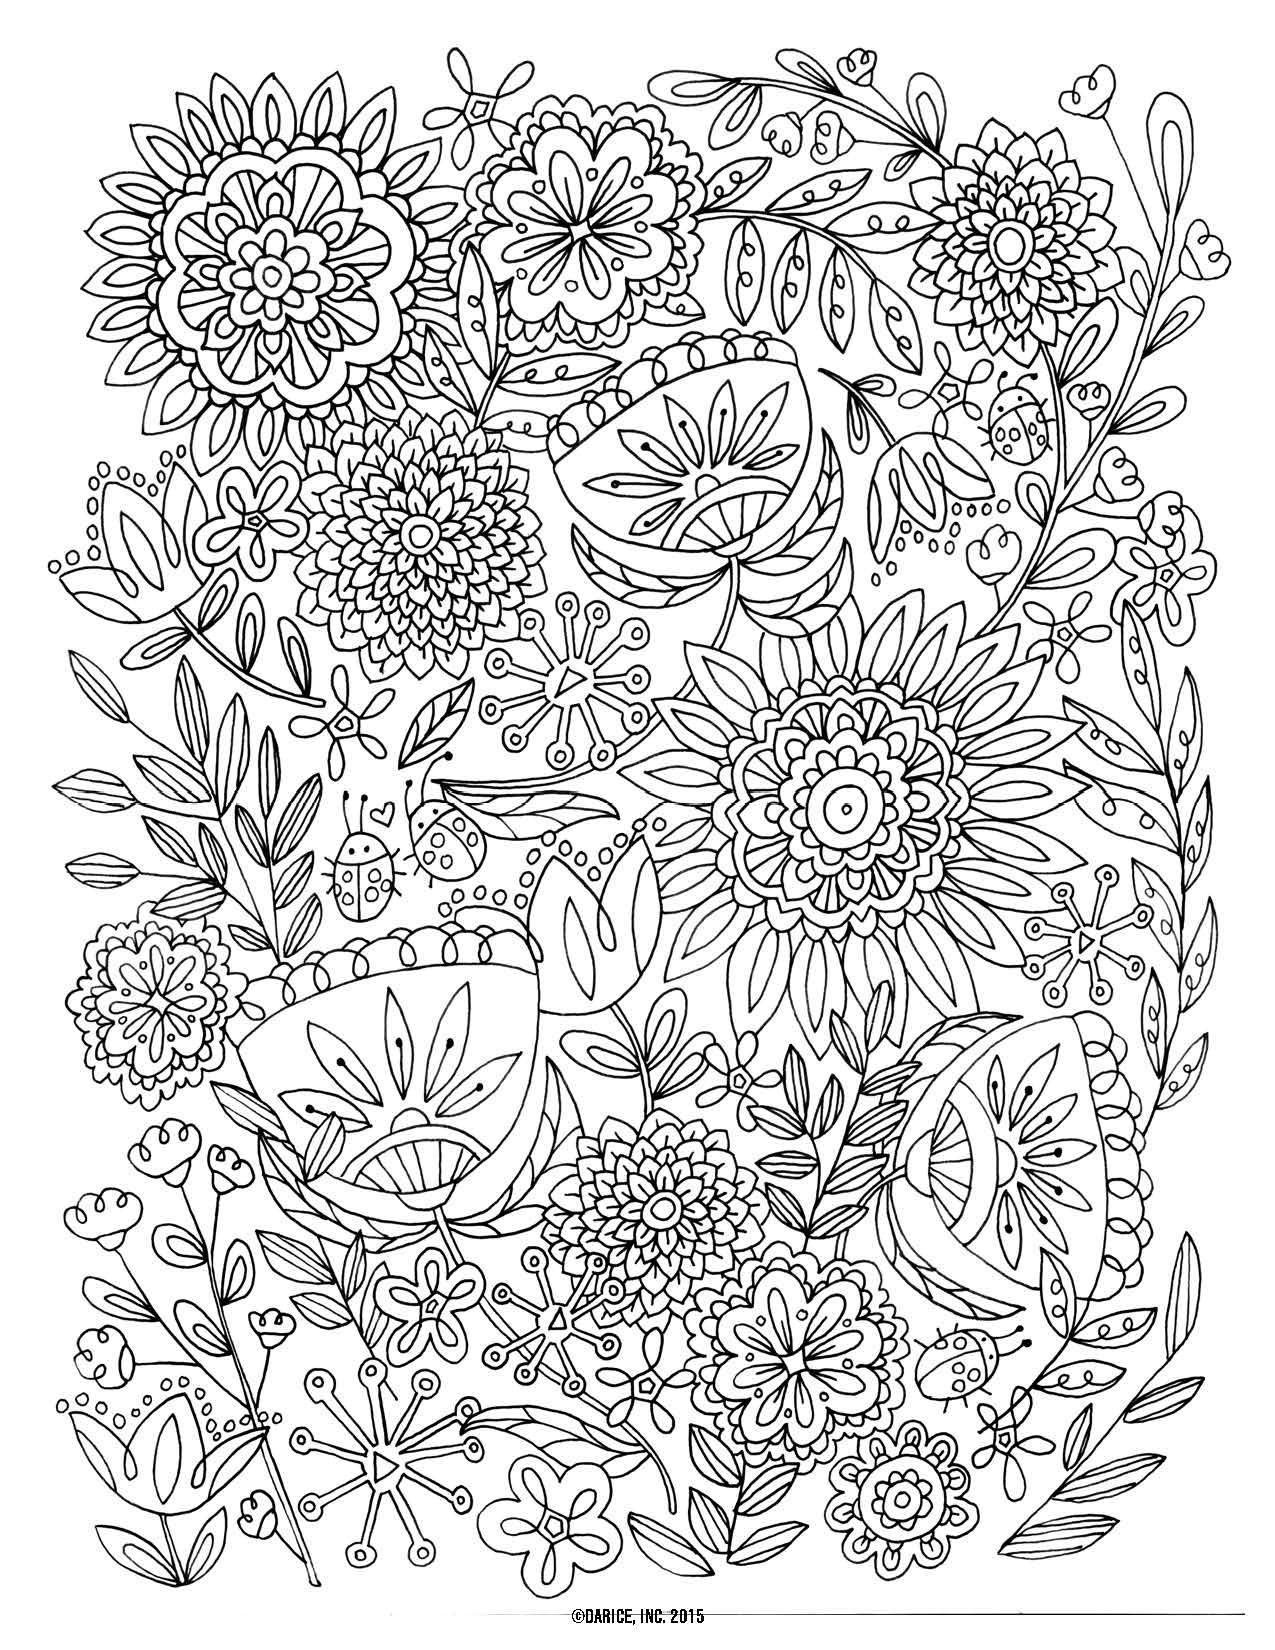 Herbs Coloring Pages Collection to Print Of Basil Herb Coloring Page Collection